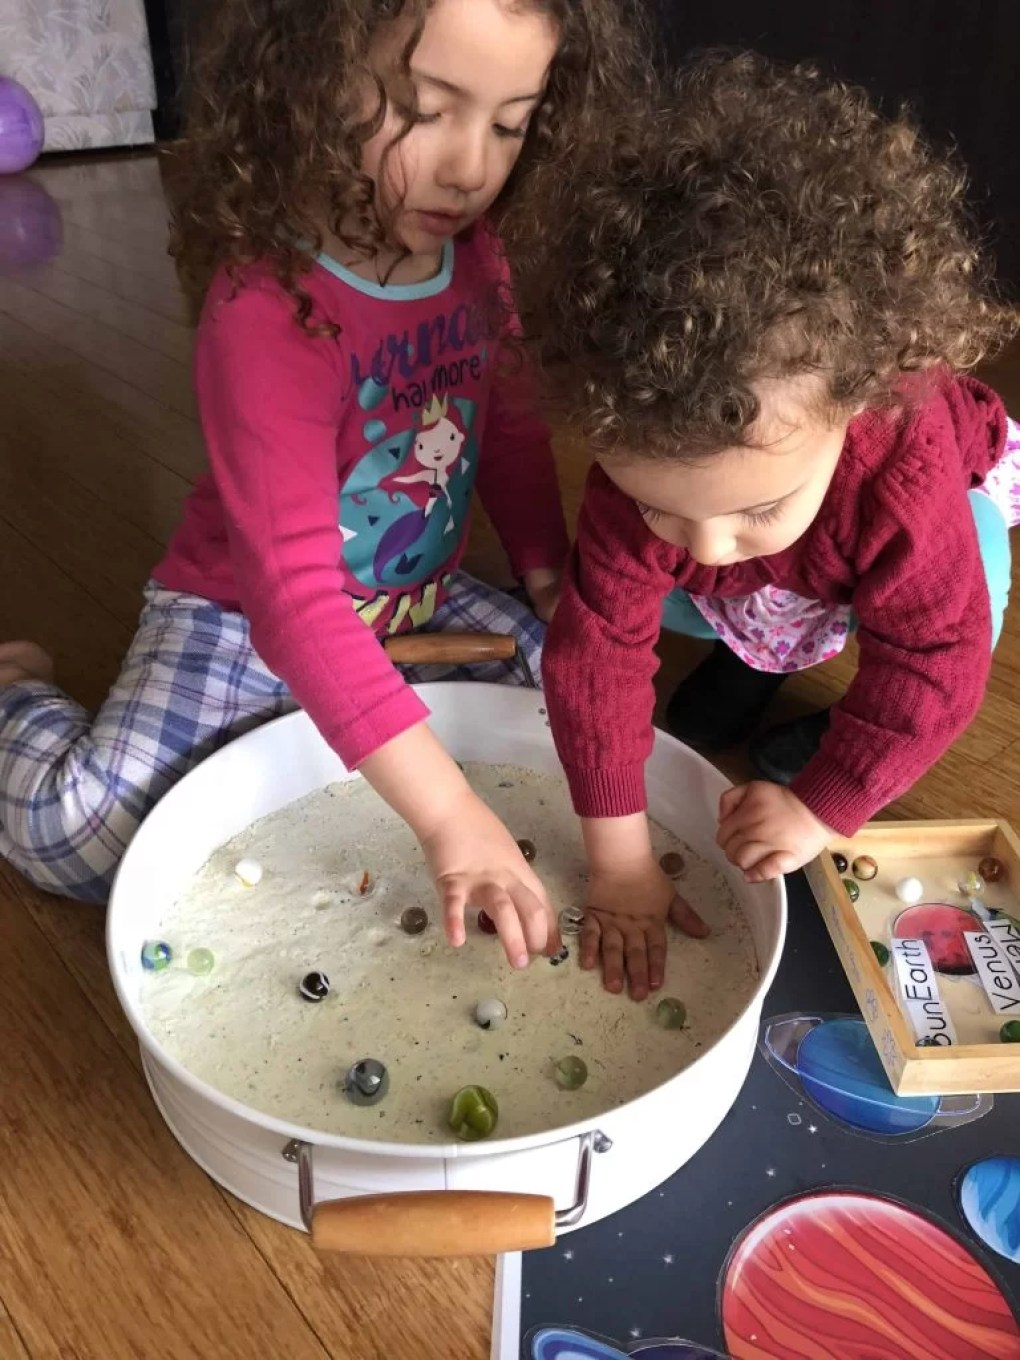 Moon dust sensory play toddlers